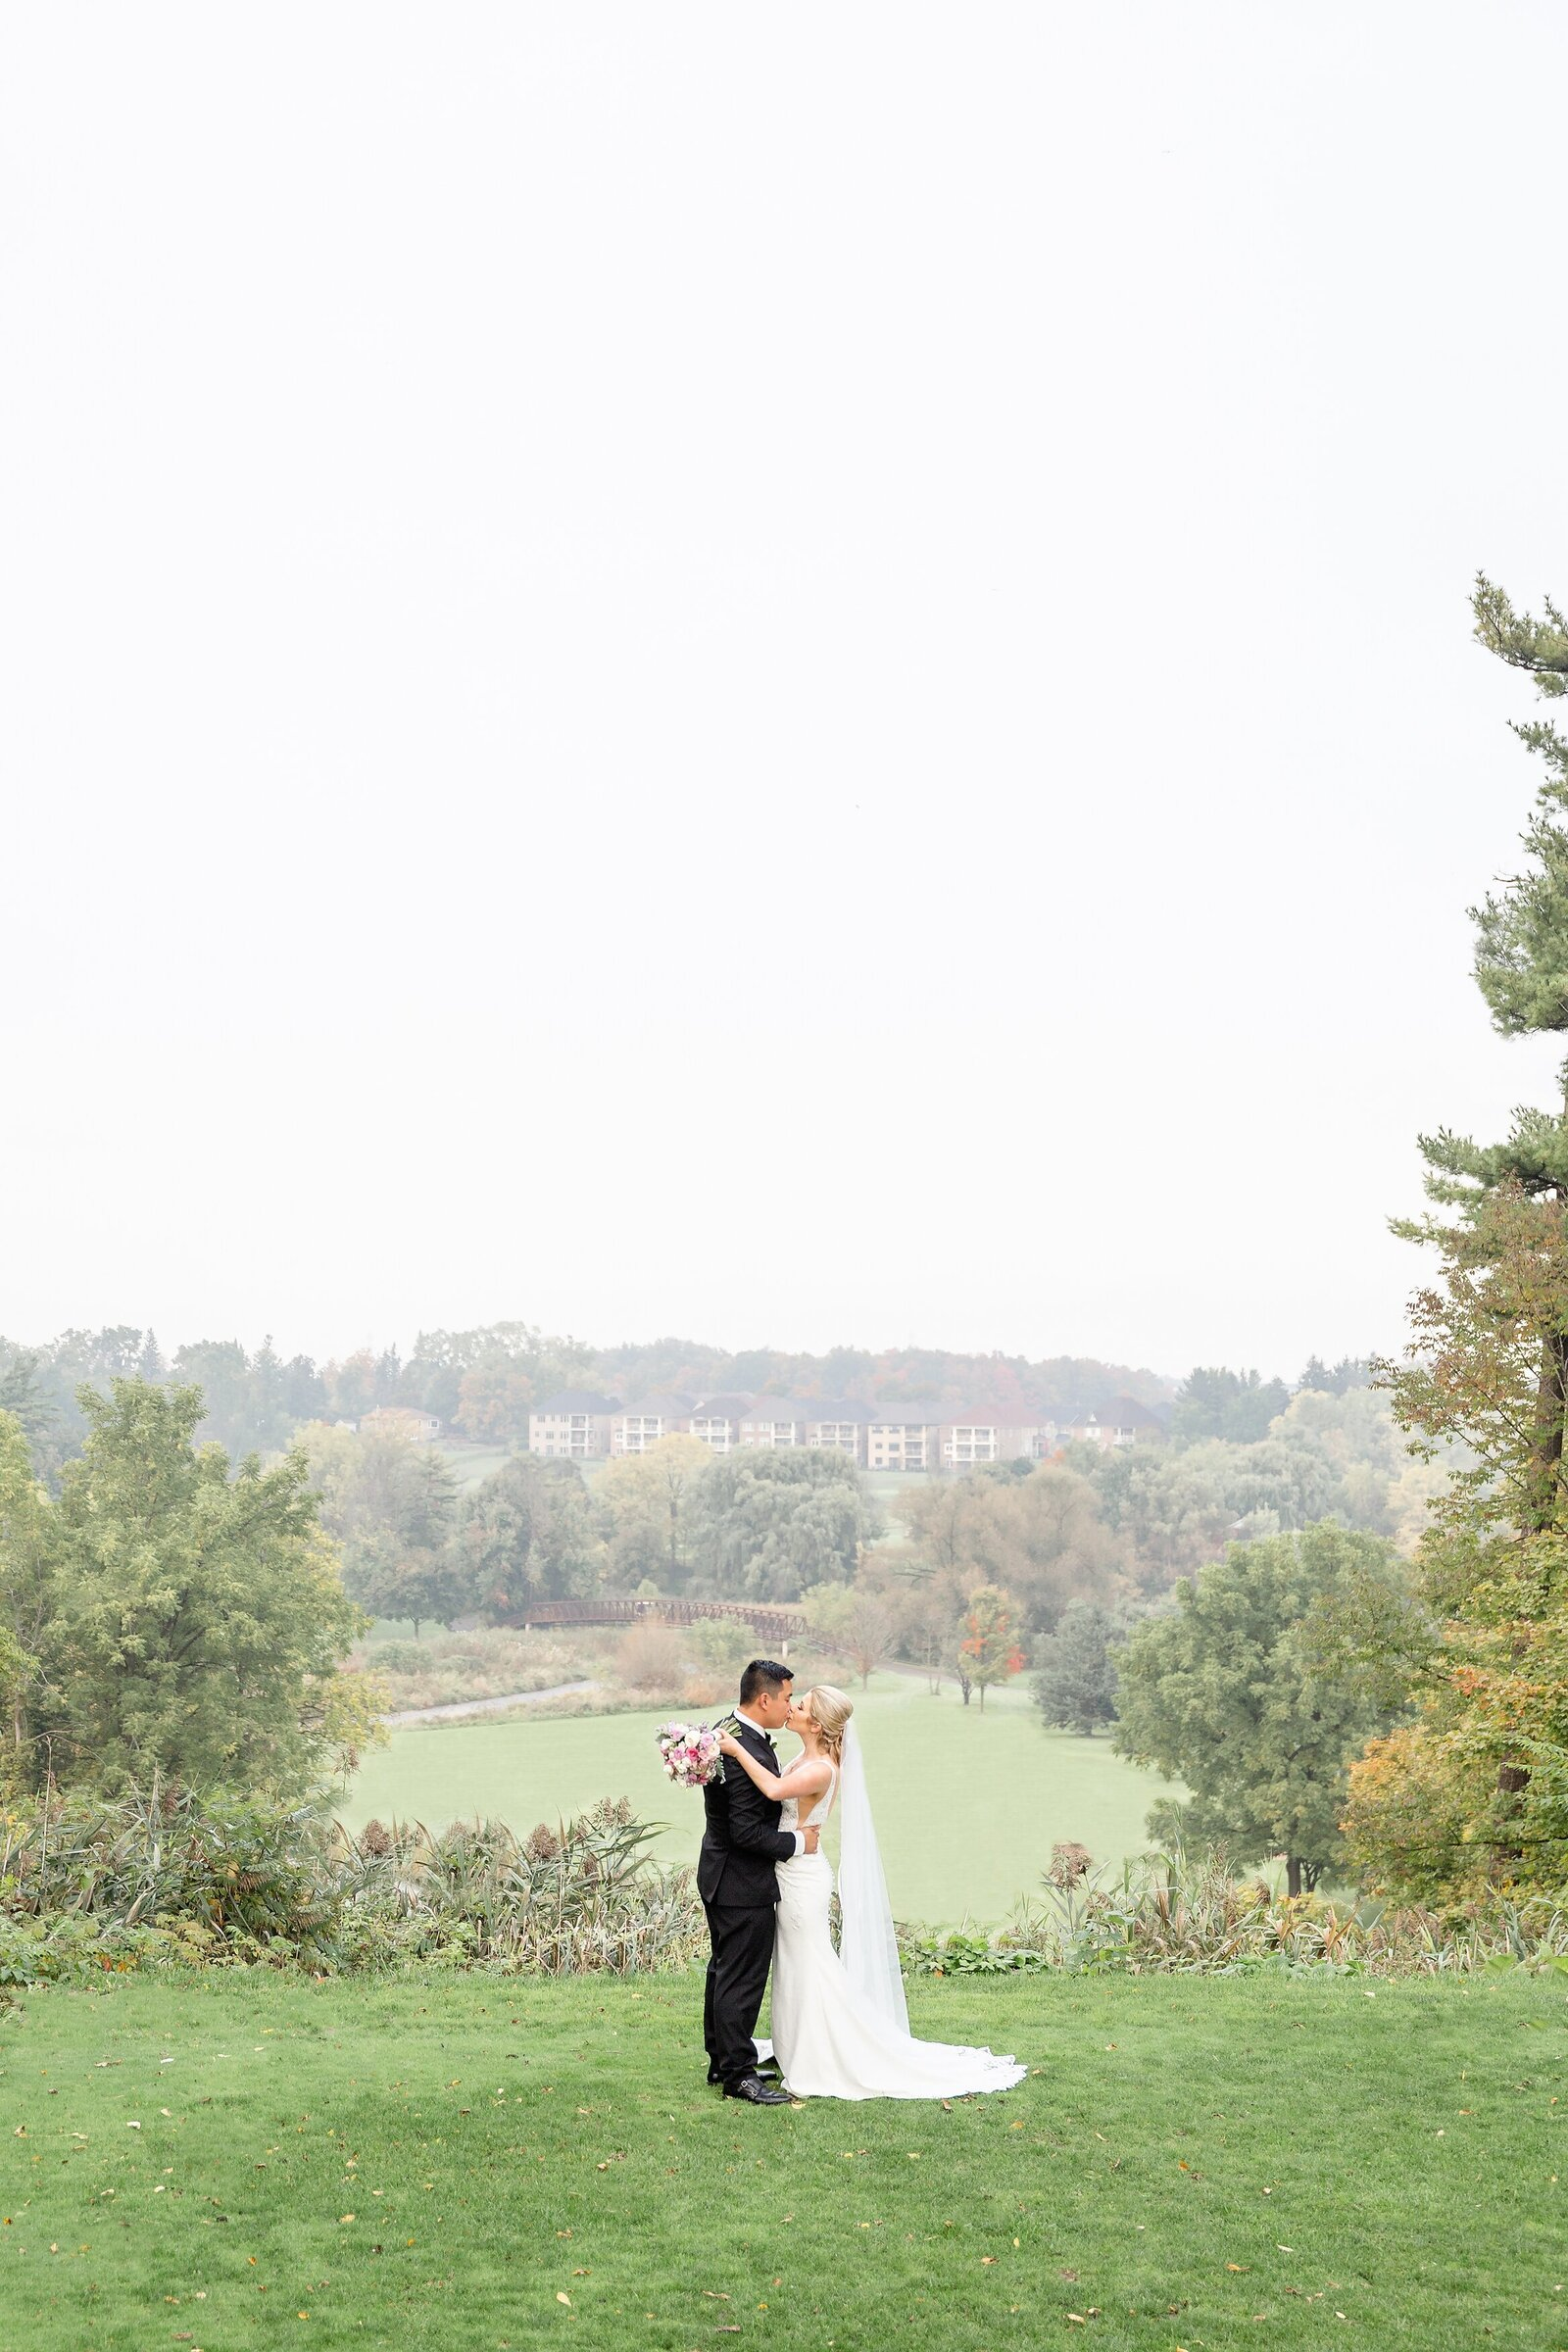 Bride-kissing-her-new-husband-on-a-hill-overlooking-a-beautiful-view-at-lionhead-golf-club